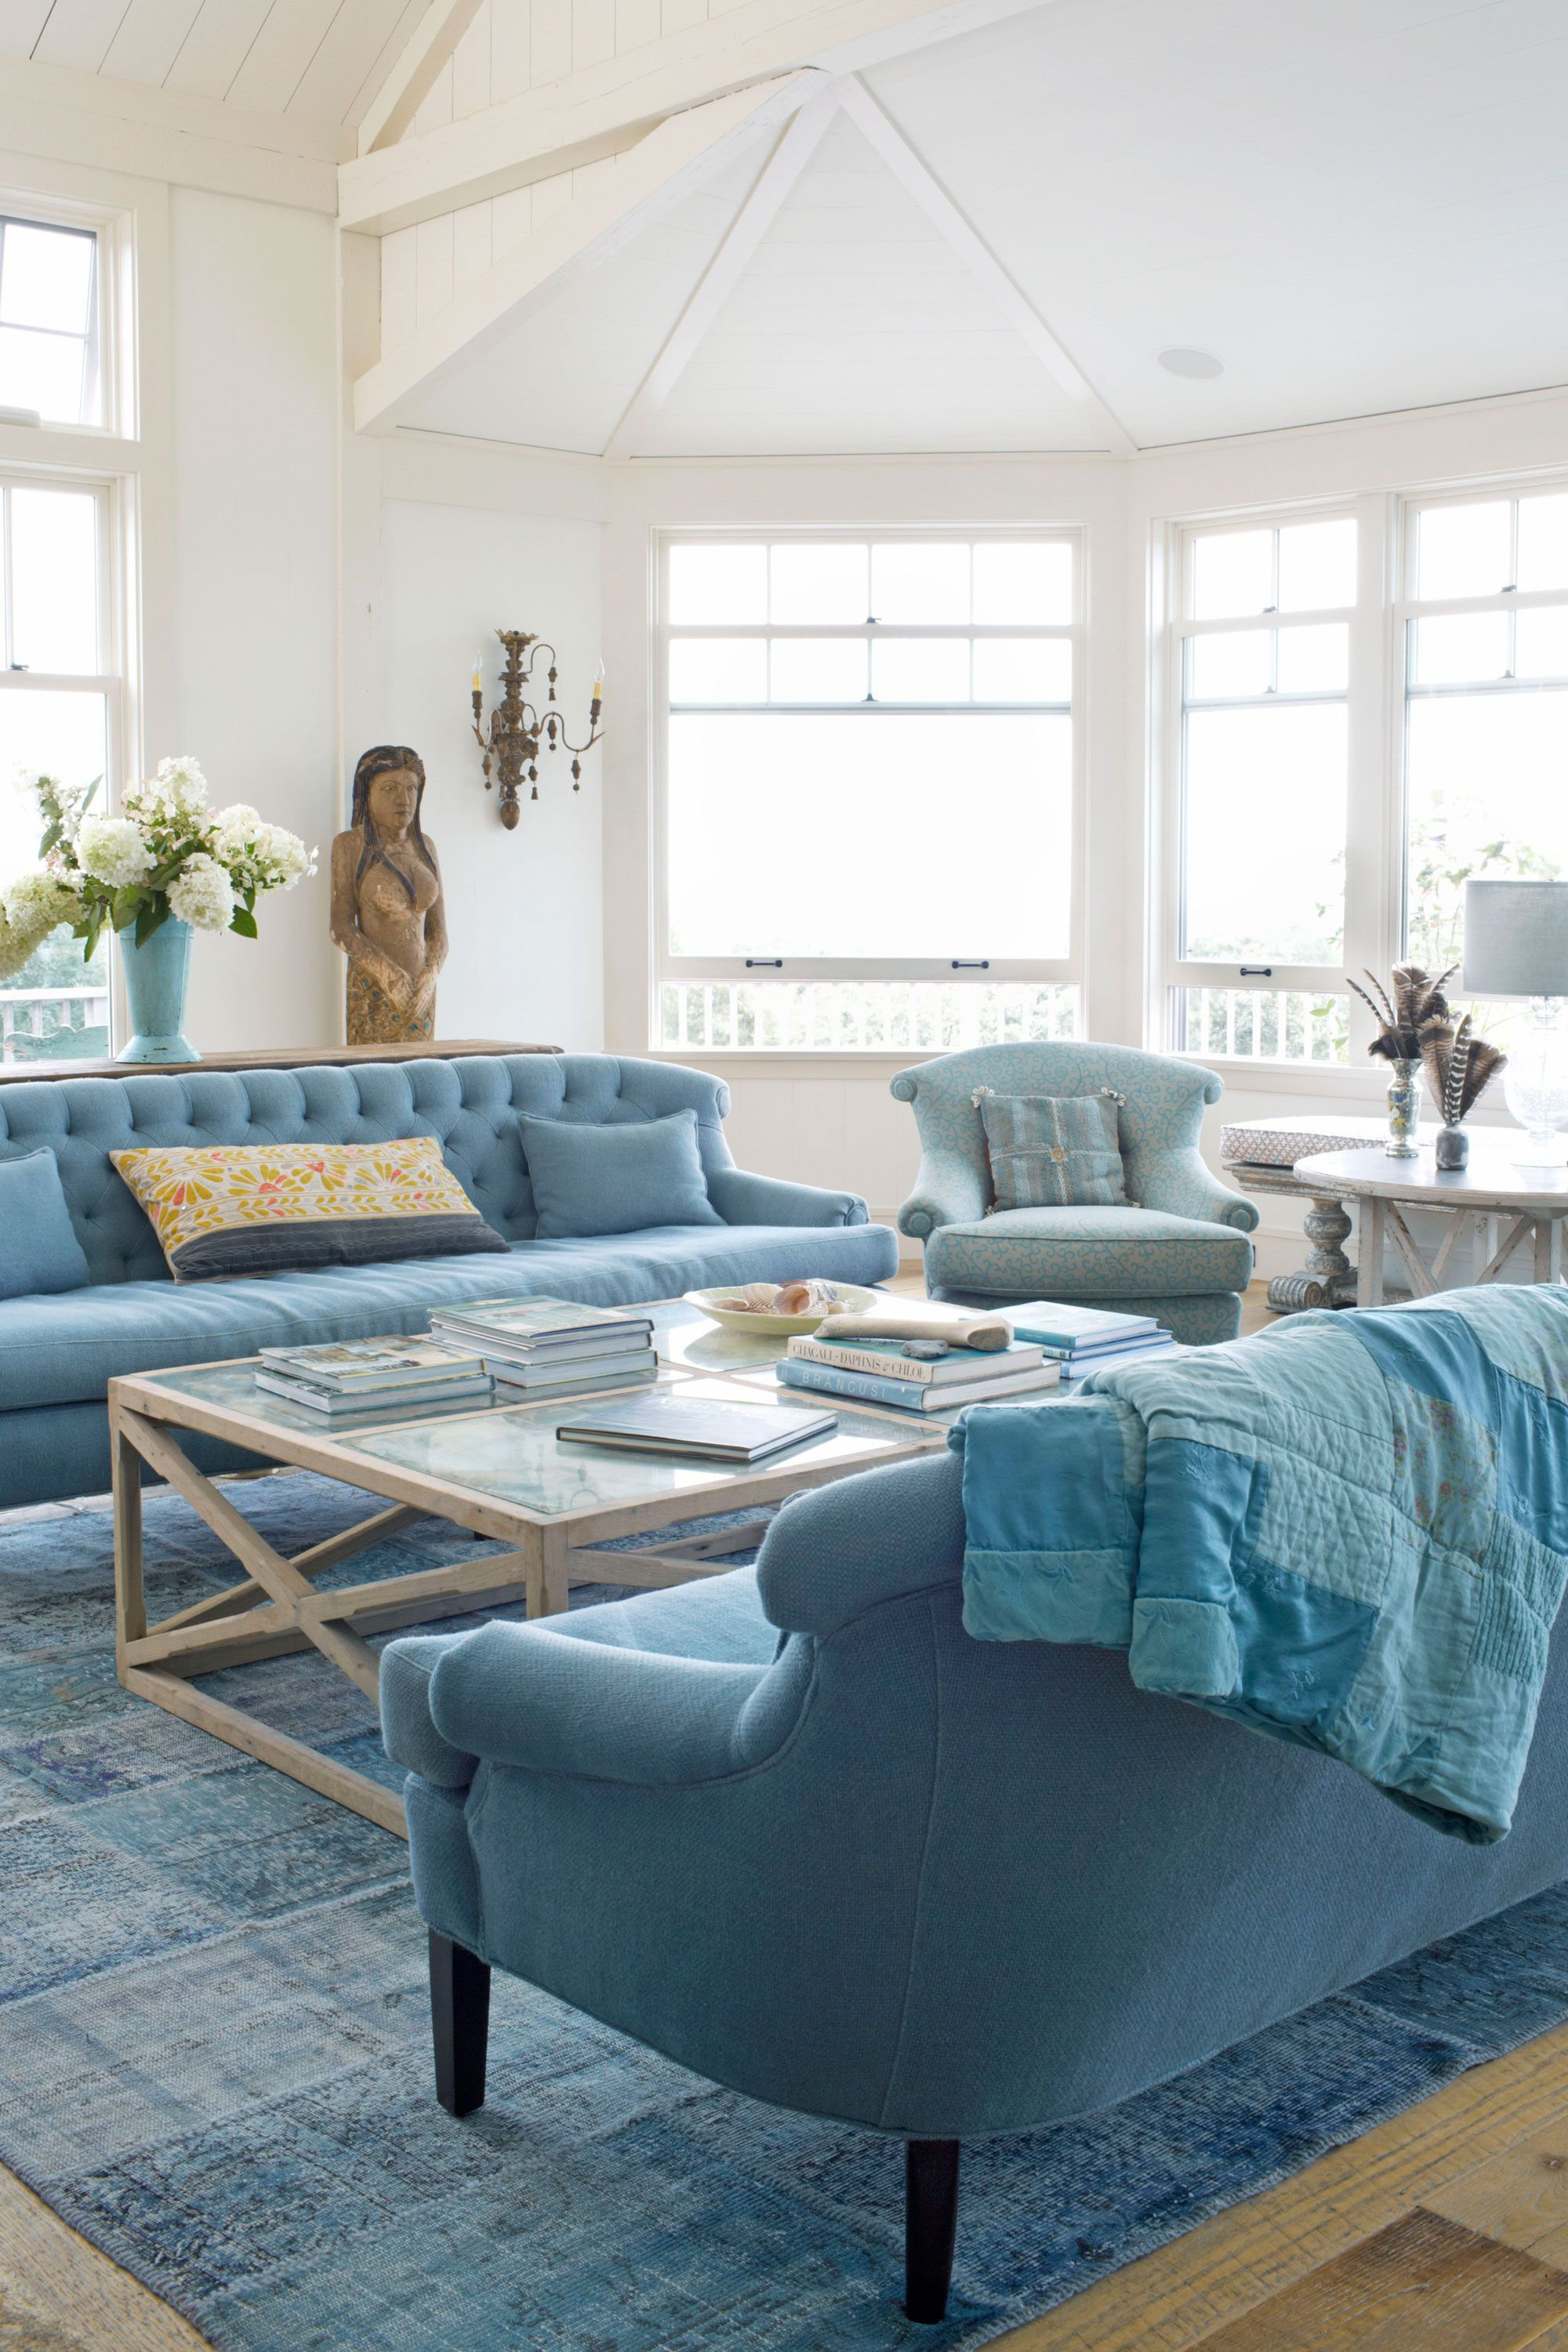 Bring Beach Vibes Into Any Home With These Decor Ideas Beach Decor Living Room Blue Living Room Blue Rooms